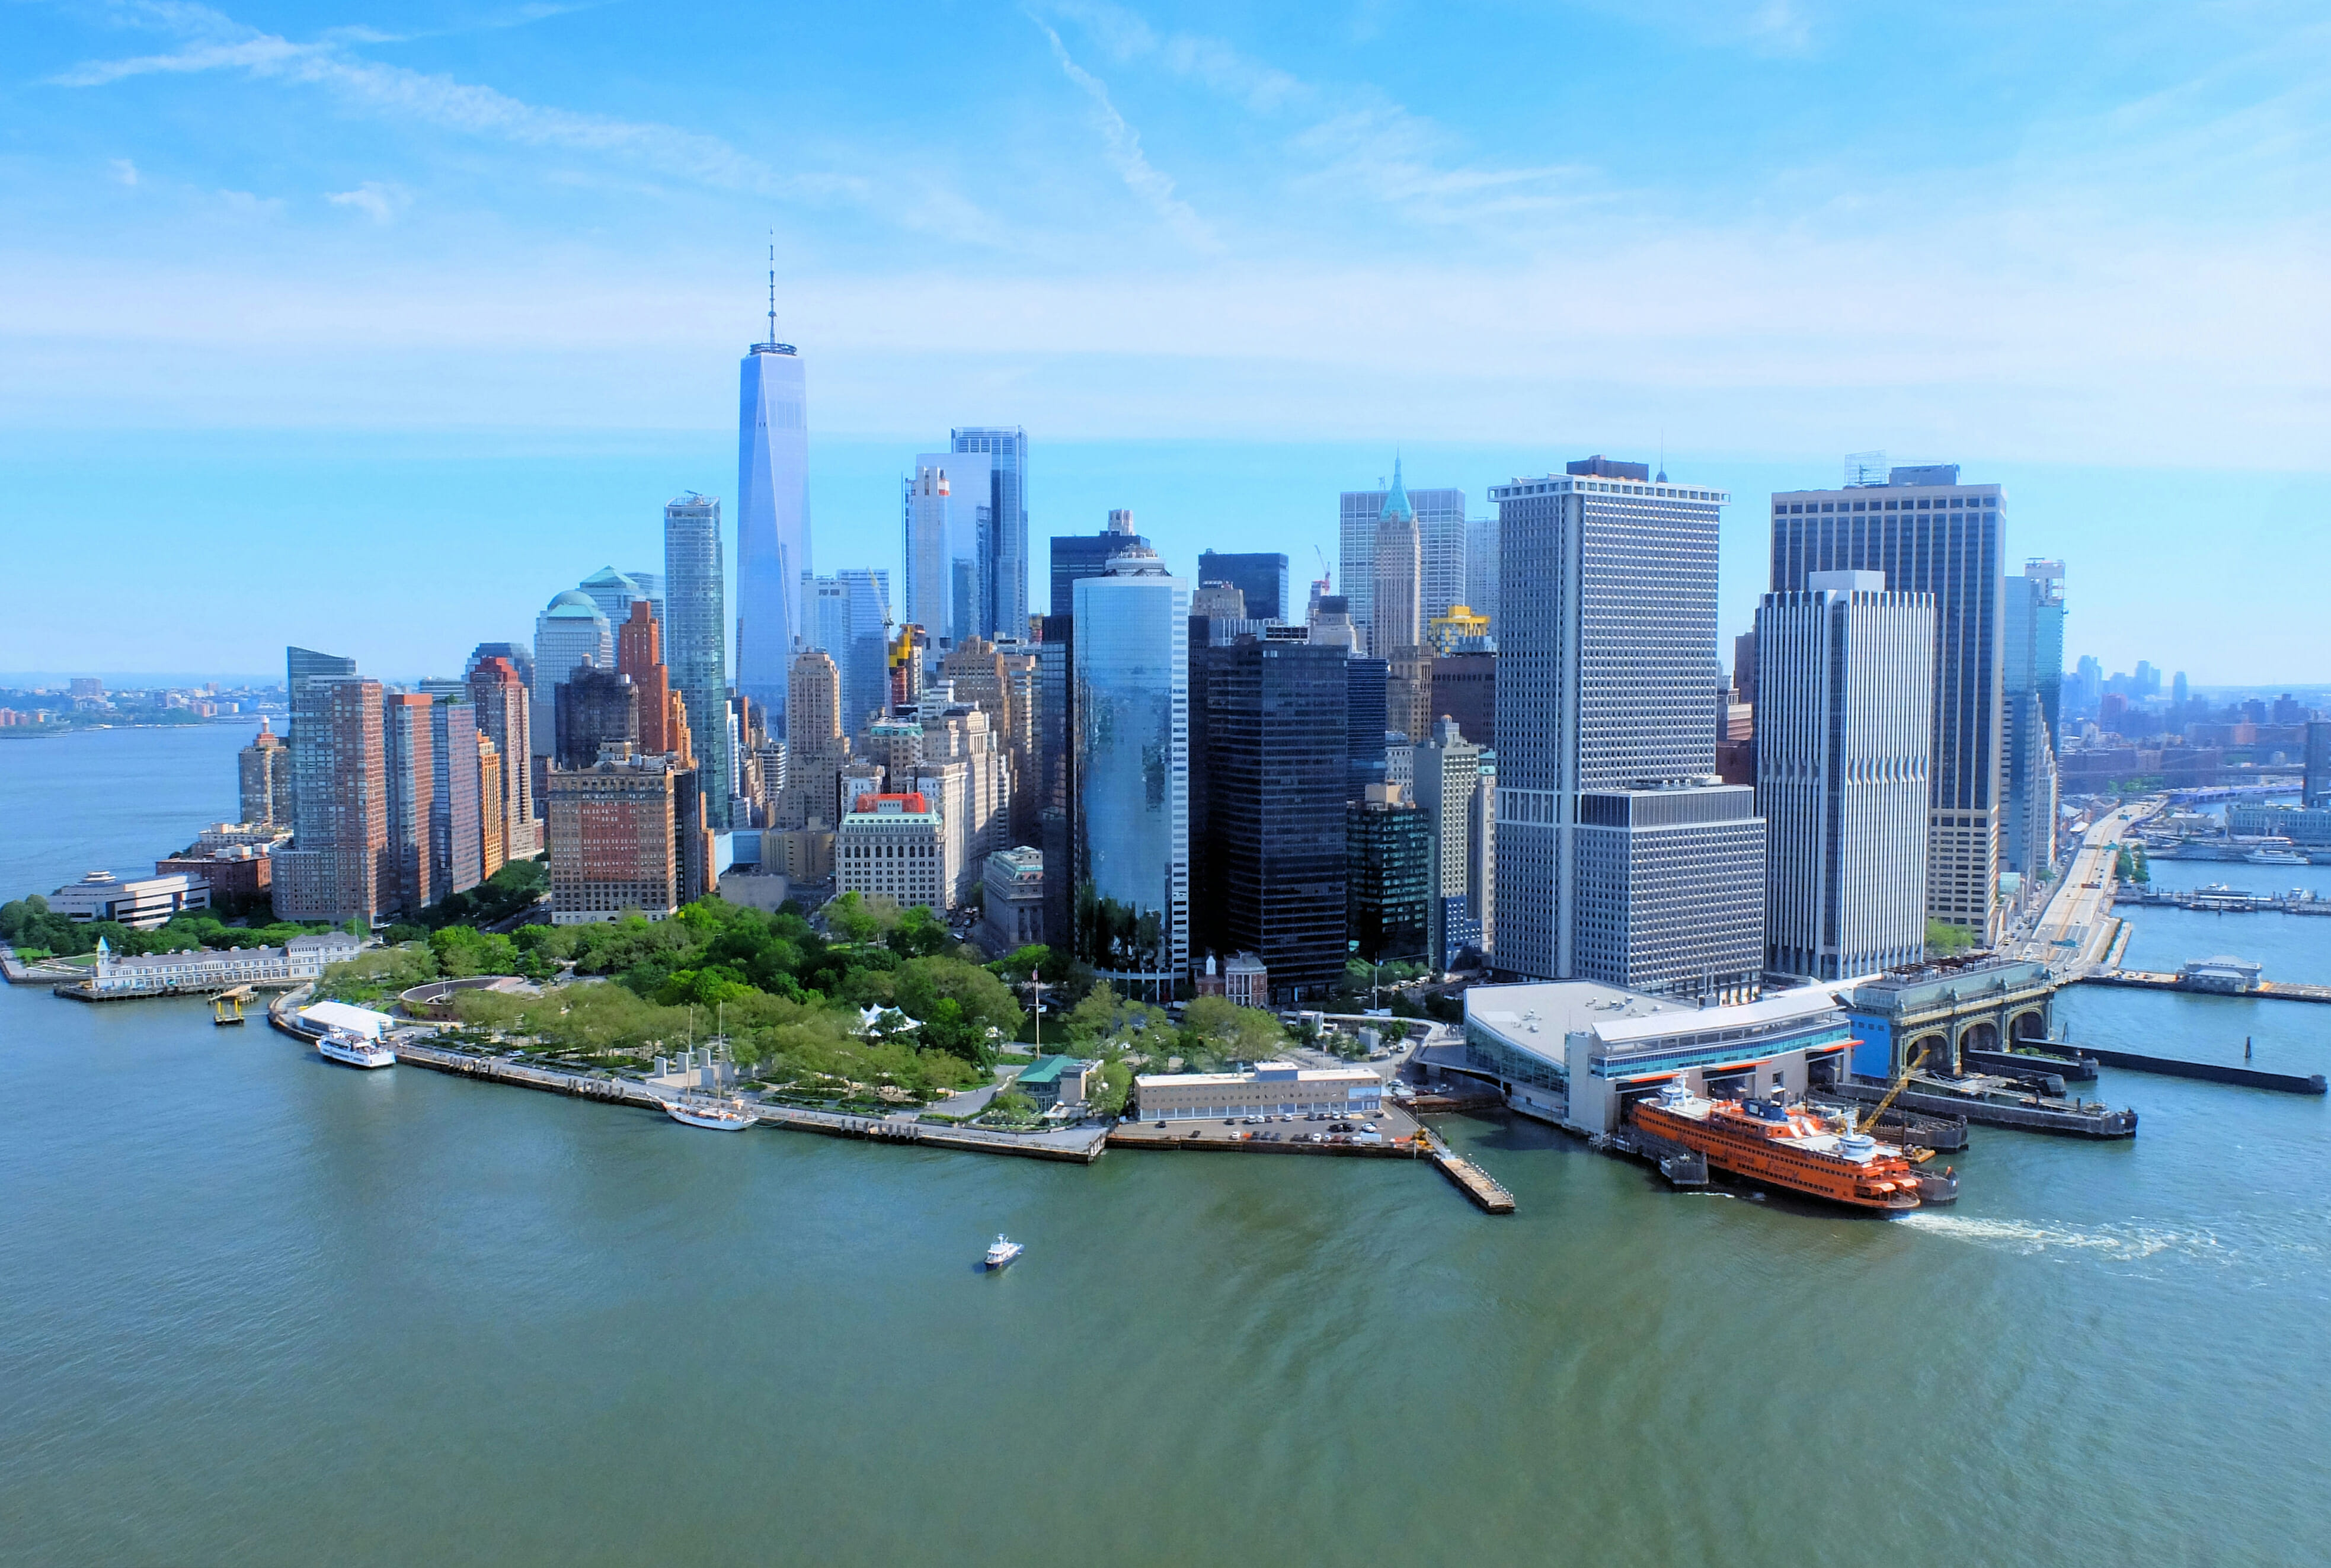 New York Helicopter Tour Skyline – High Quality Wallpaper